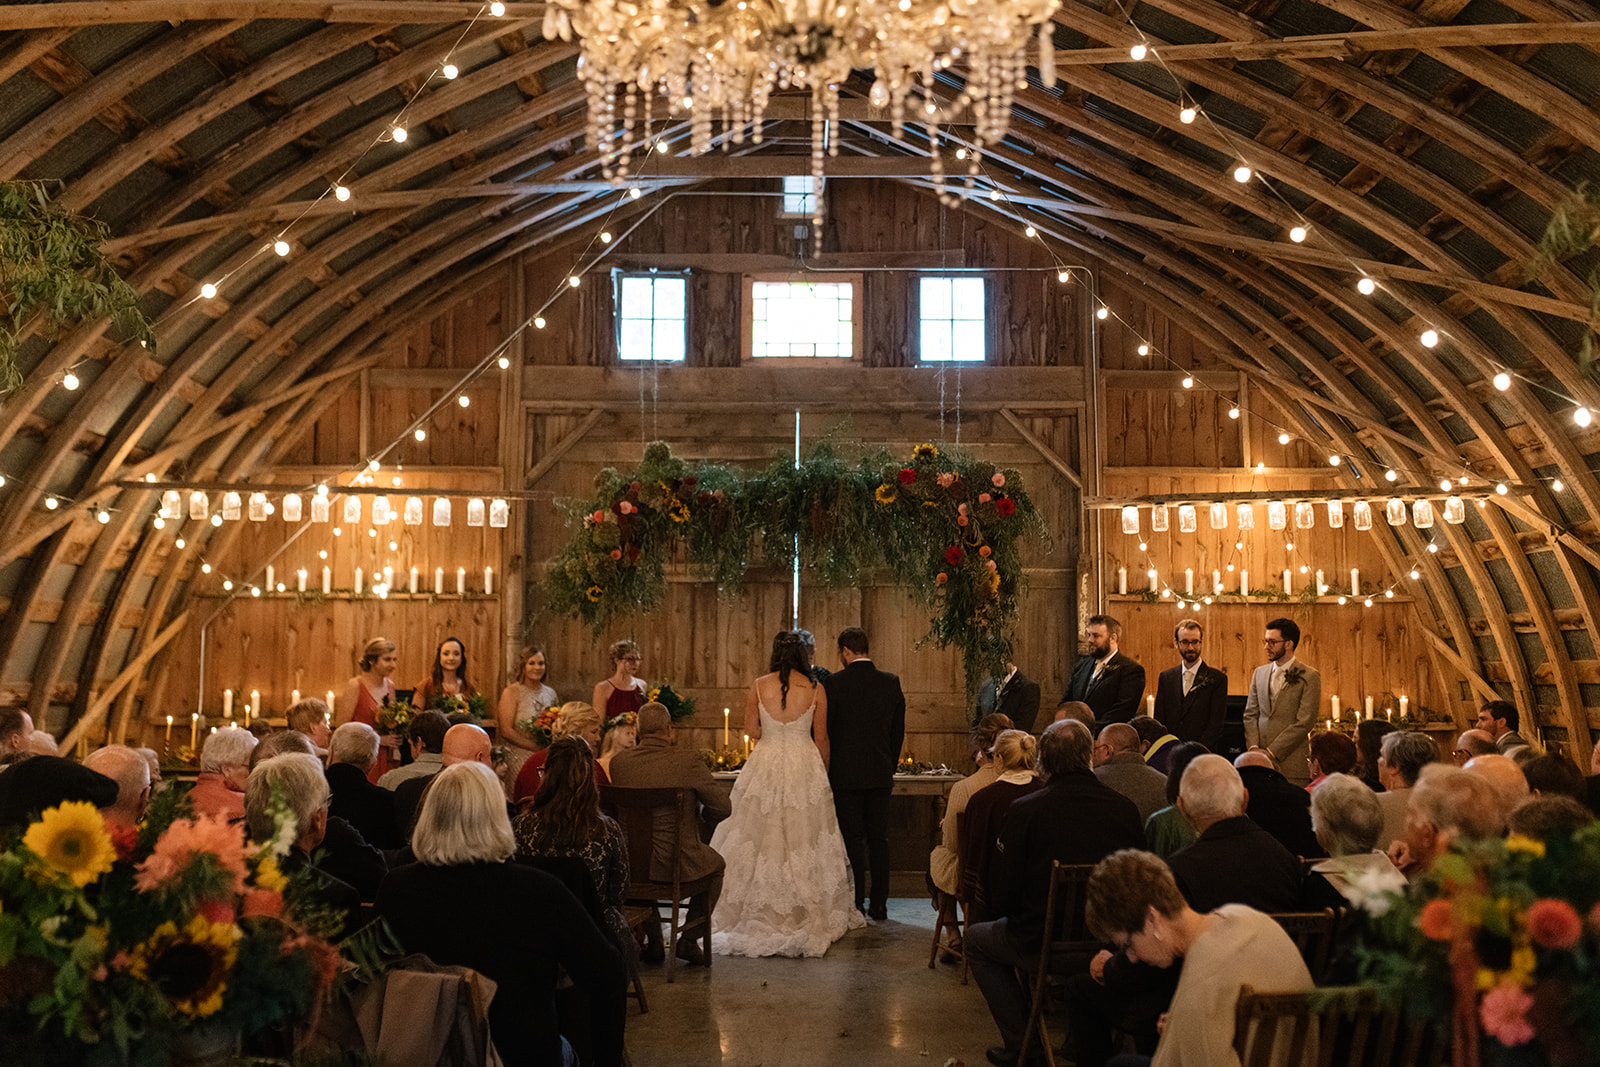 wedding ceremony at the barn wedding venue